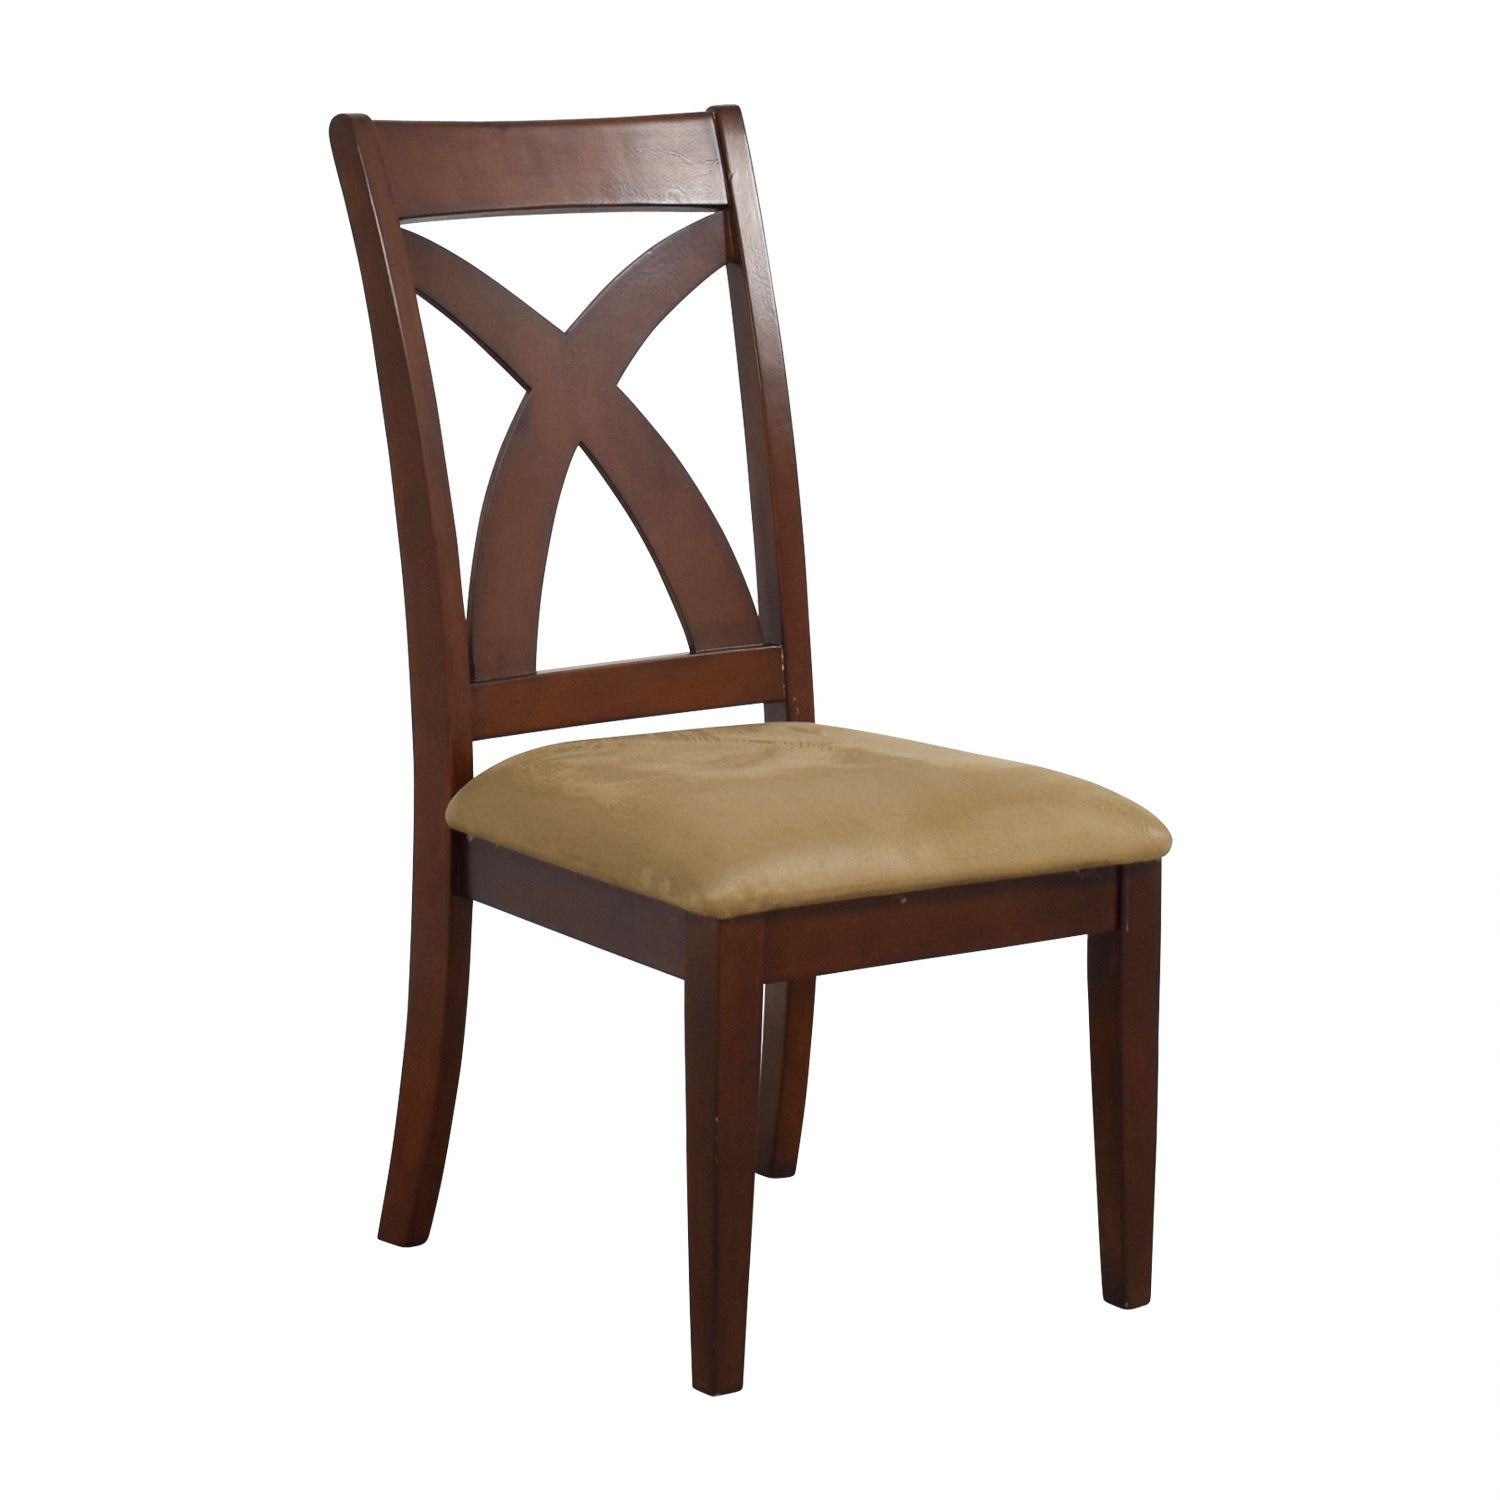 Cross Back Wood Chair with Padded Seat nj